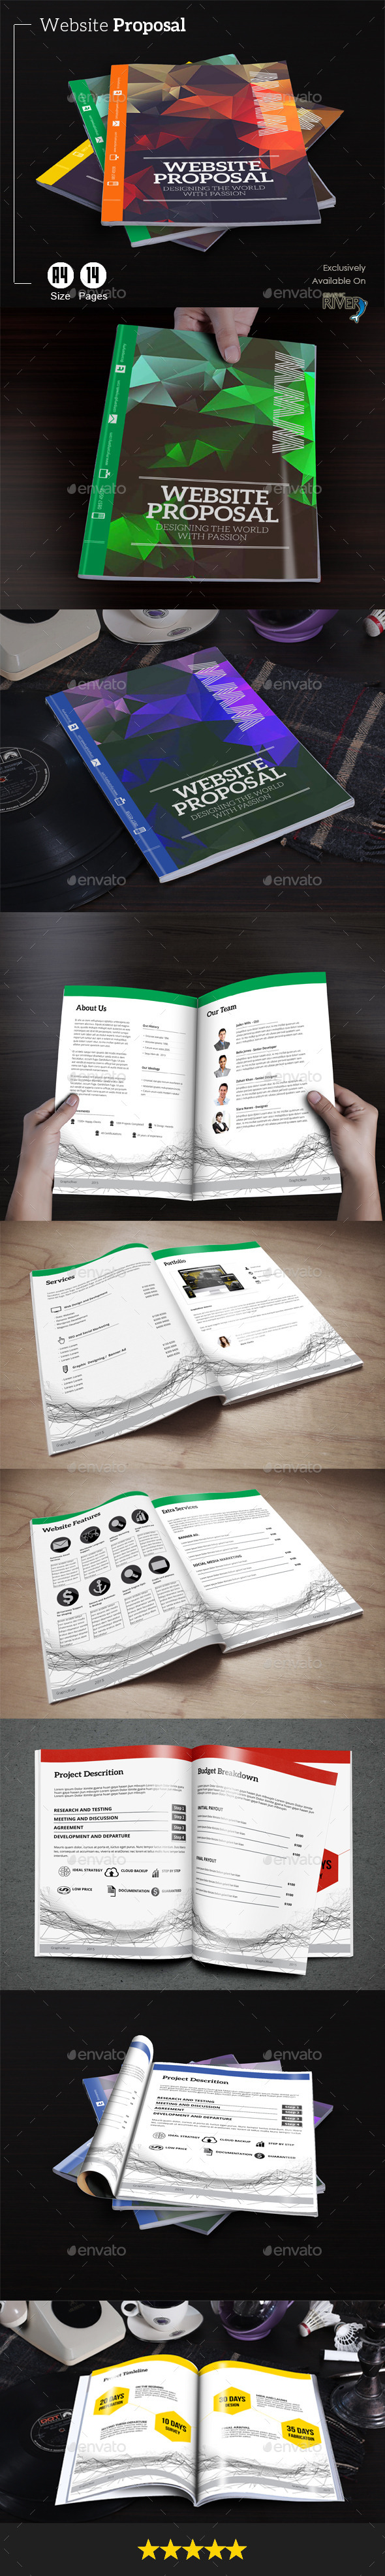 GraphicRiver Website Proposal 11824489